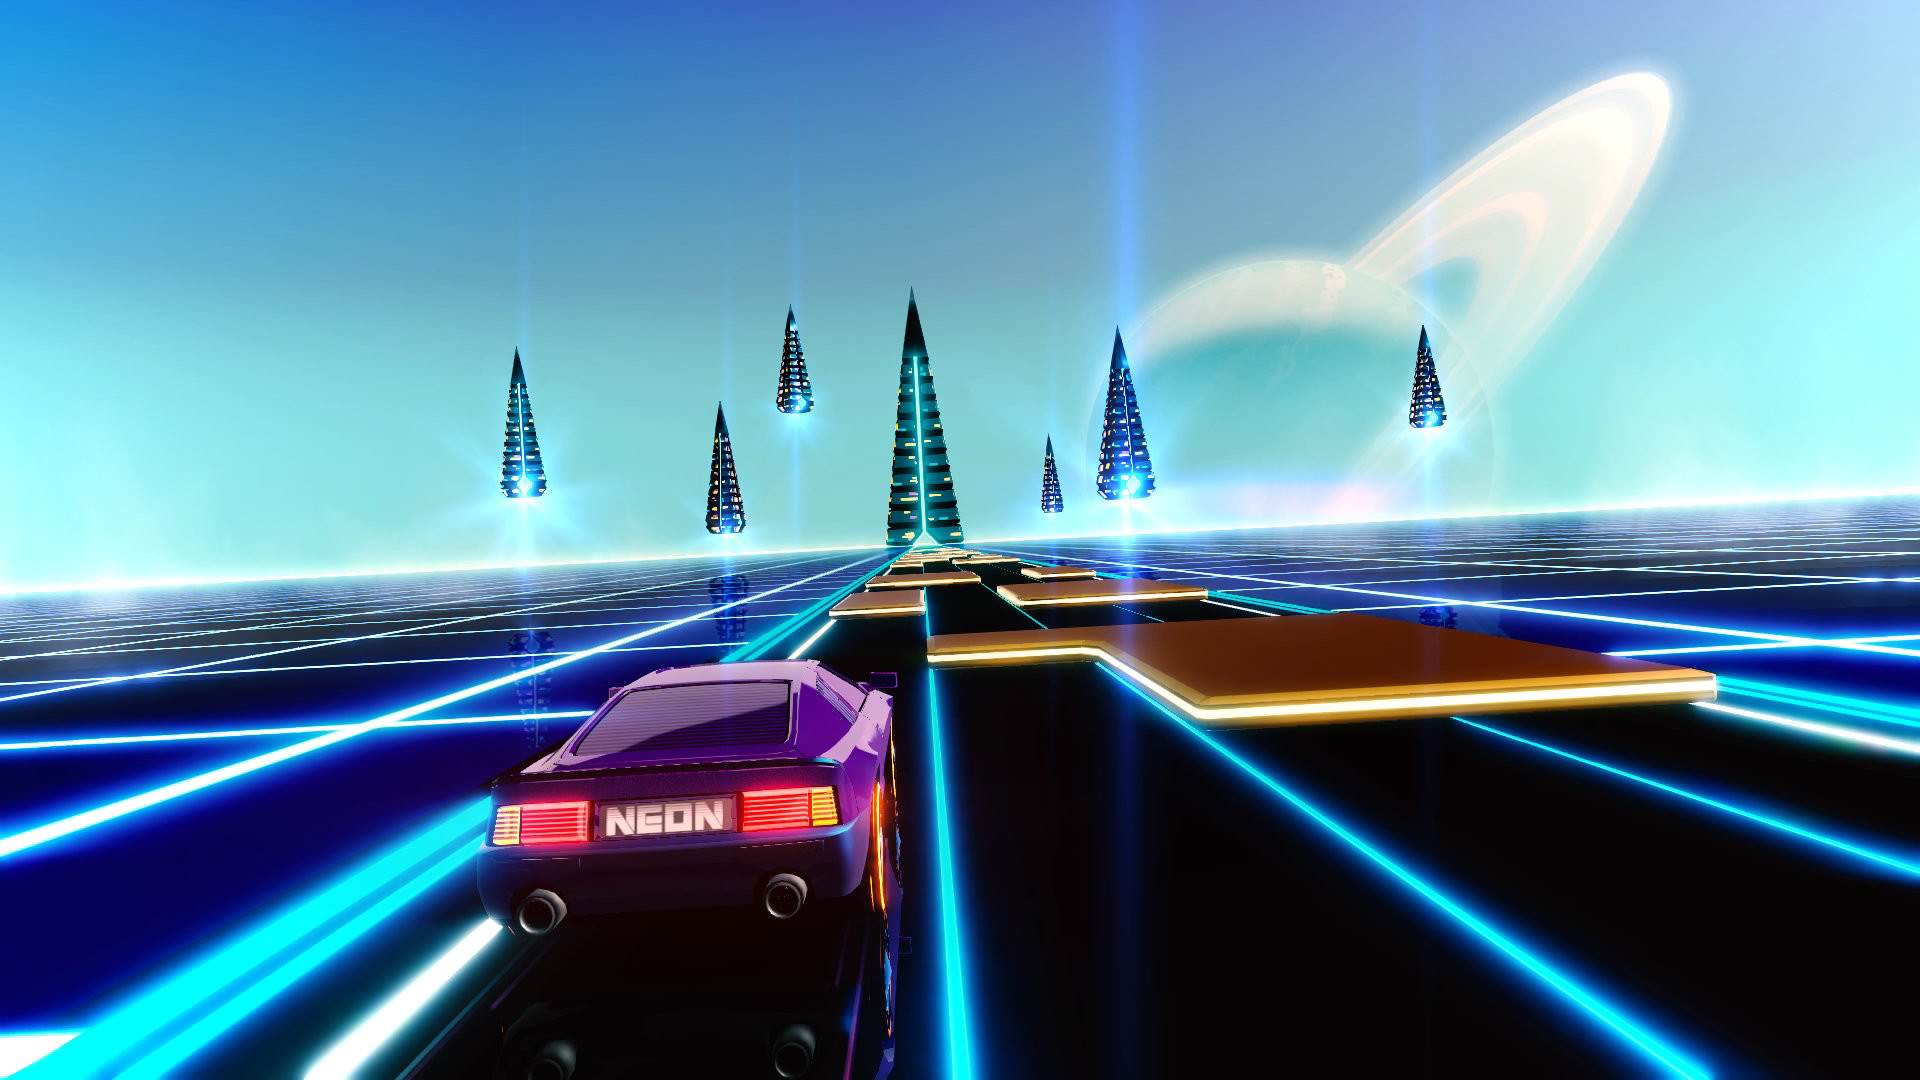 Go back to the '80s with Neon Drive